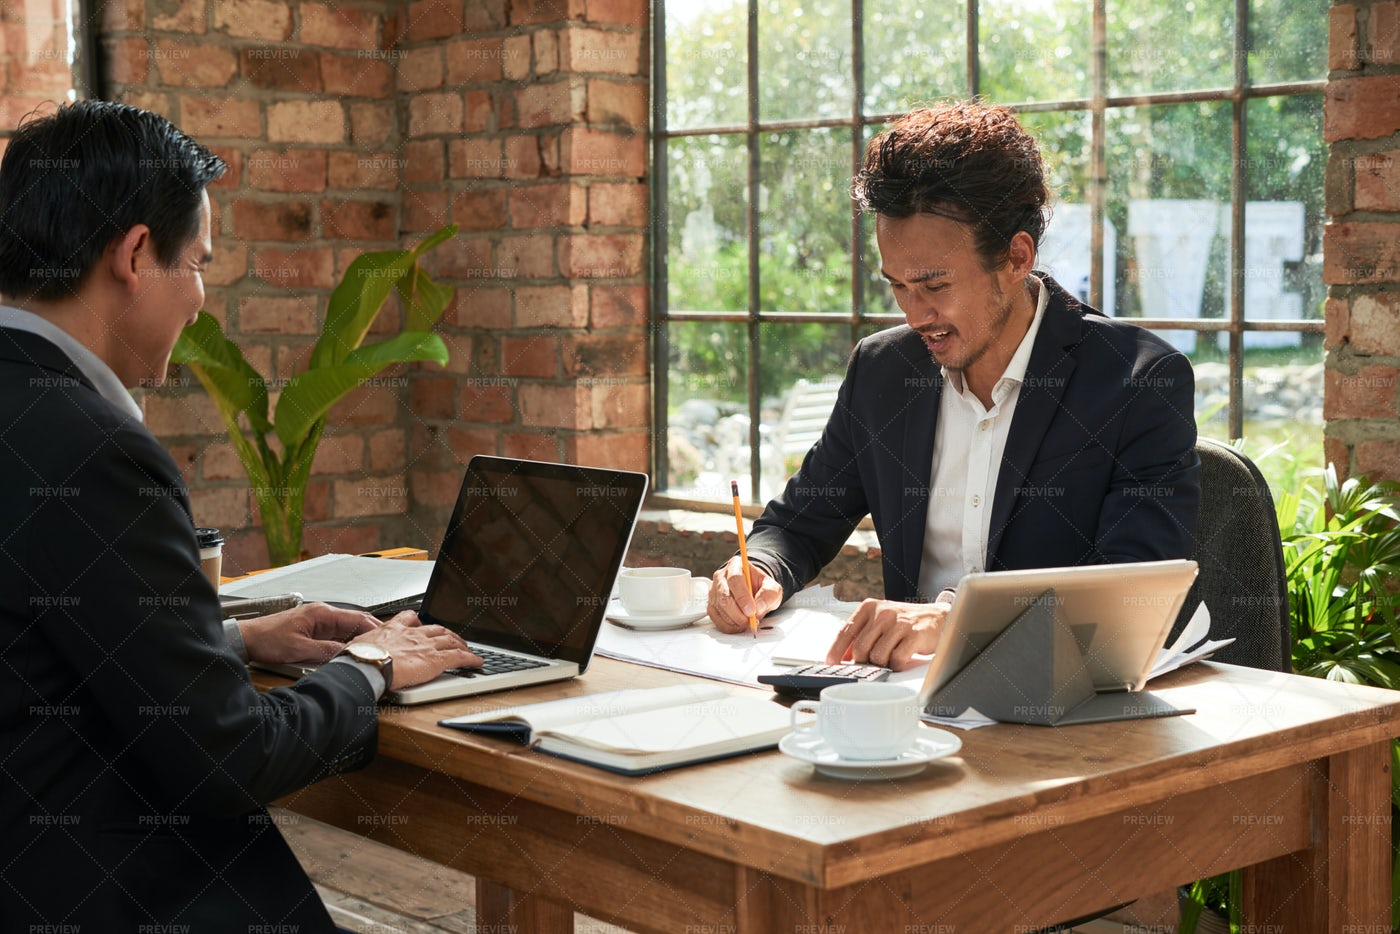 Business People Busy With Work: Stock Photos